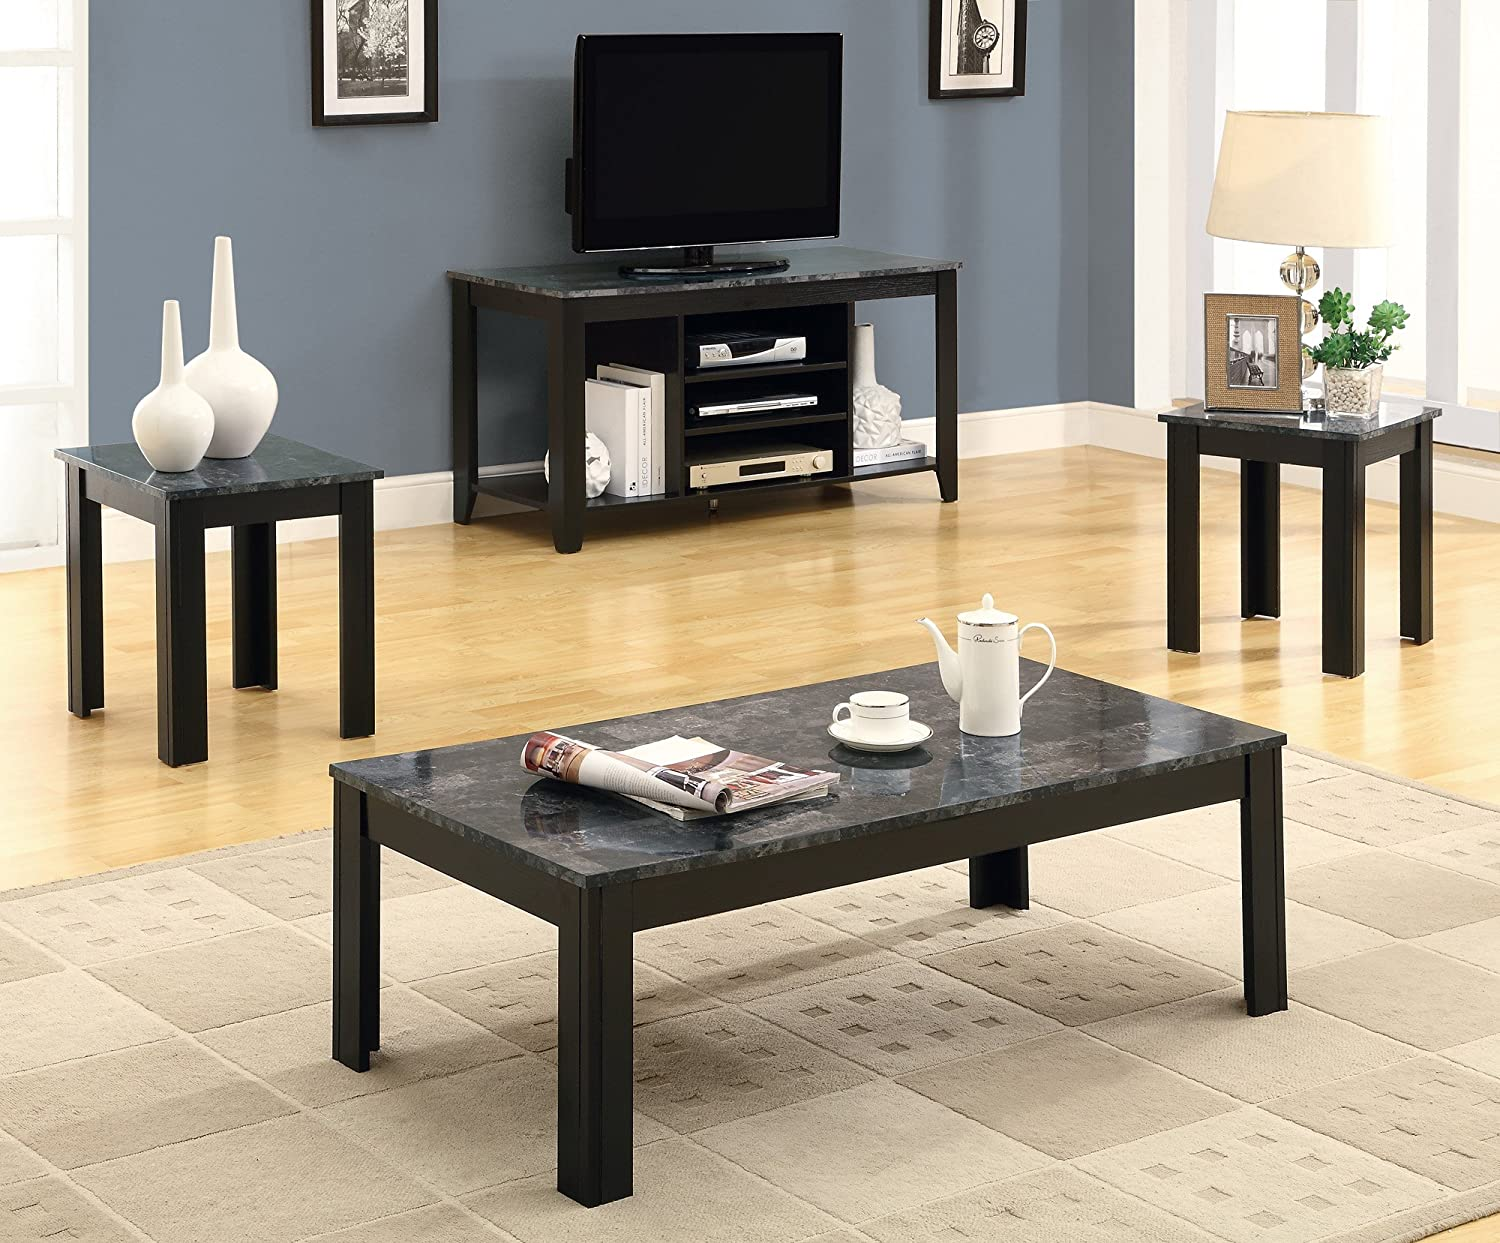 Amazon.com Monarch Specialties Marble-Look Top 3-Piece Table Set Black/Grey Kitchen u0026 Dining & Amazon.com: Monarch Specialties Marble-Look Top 3-Piece Table Set ...